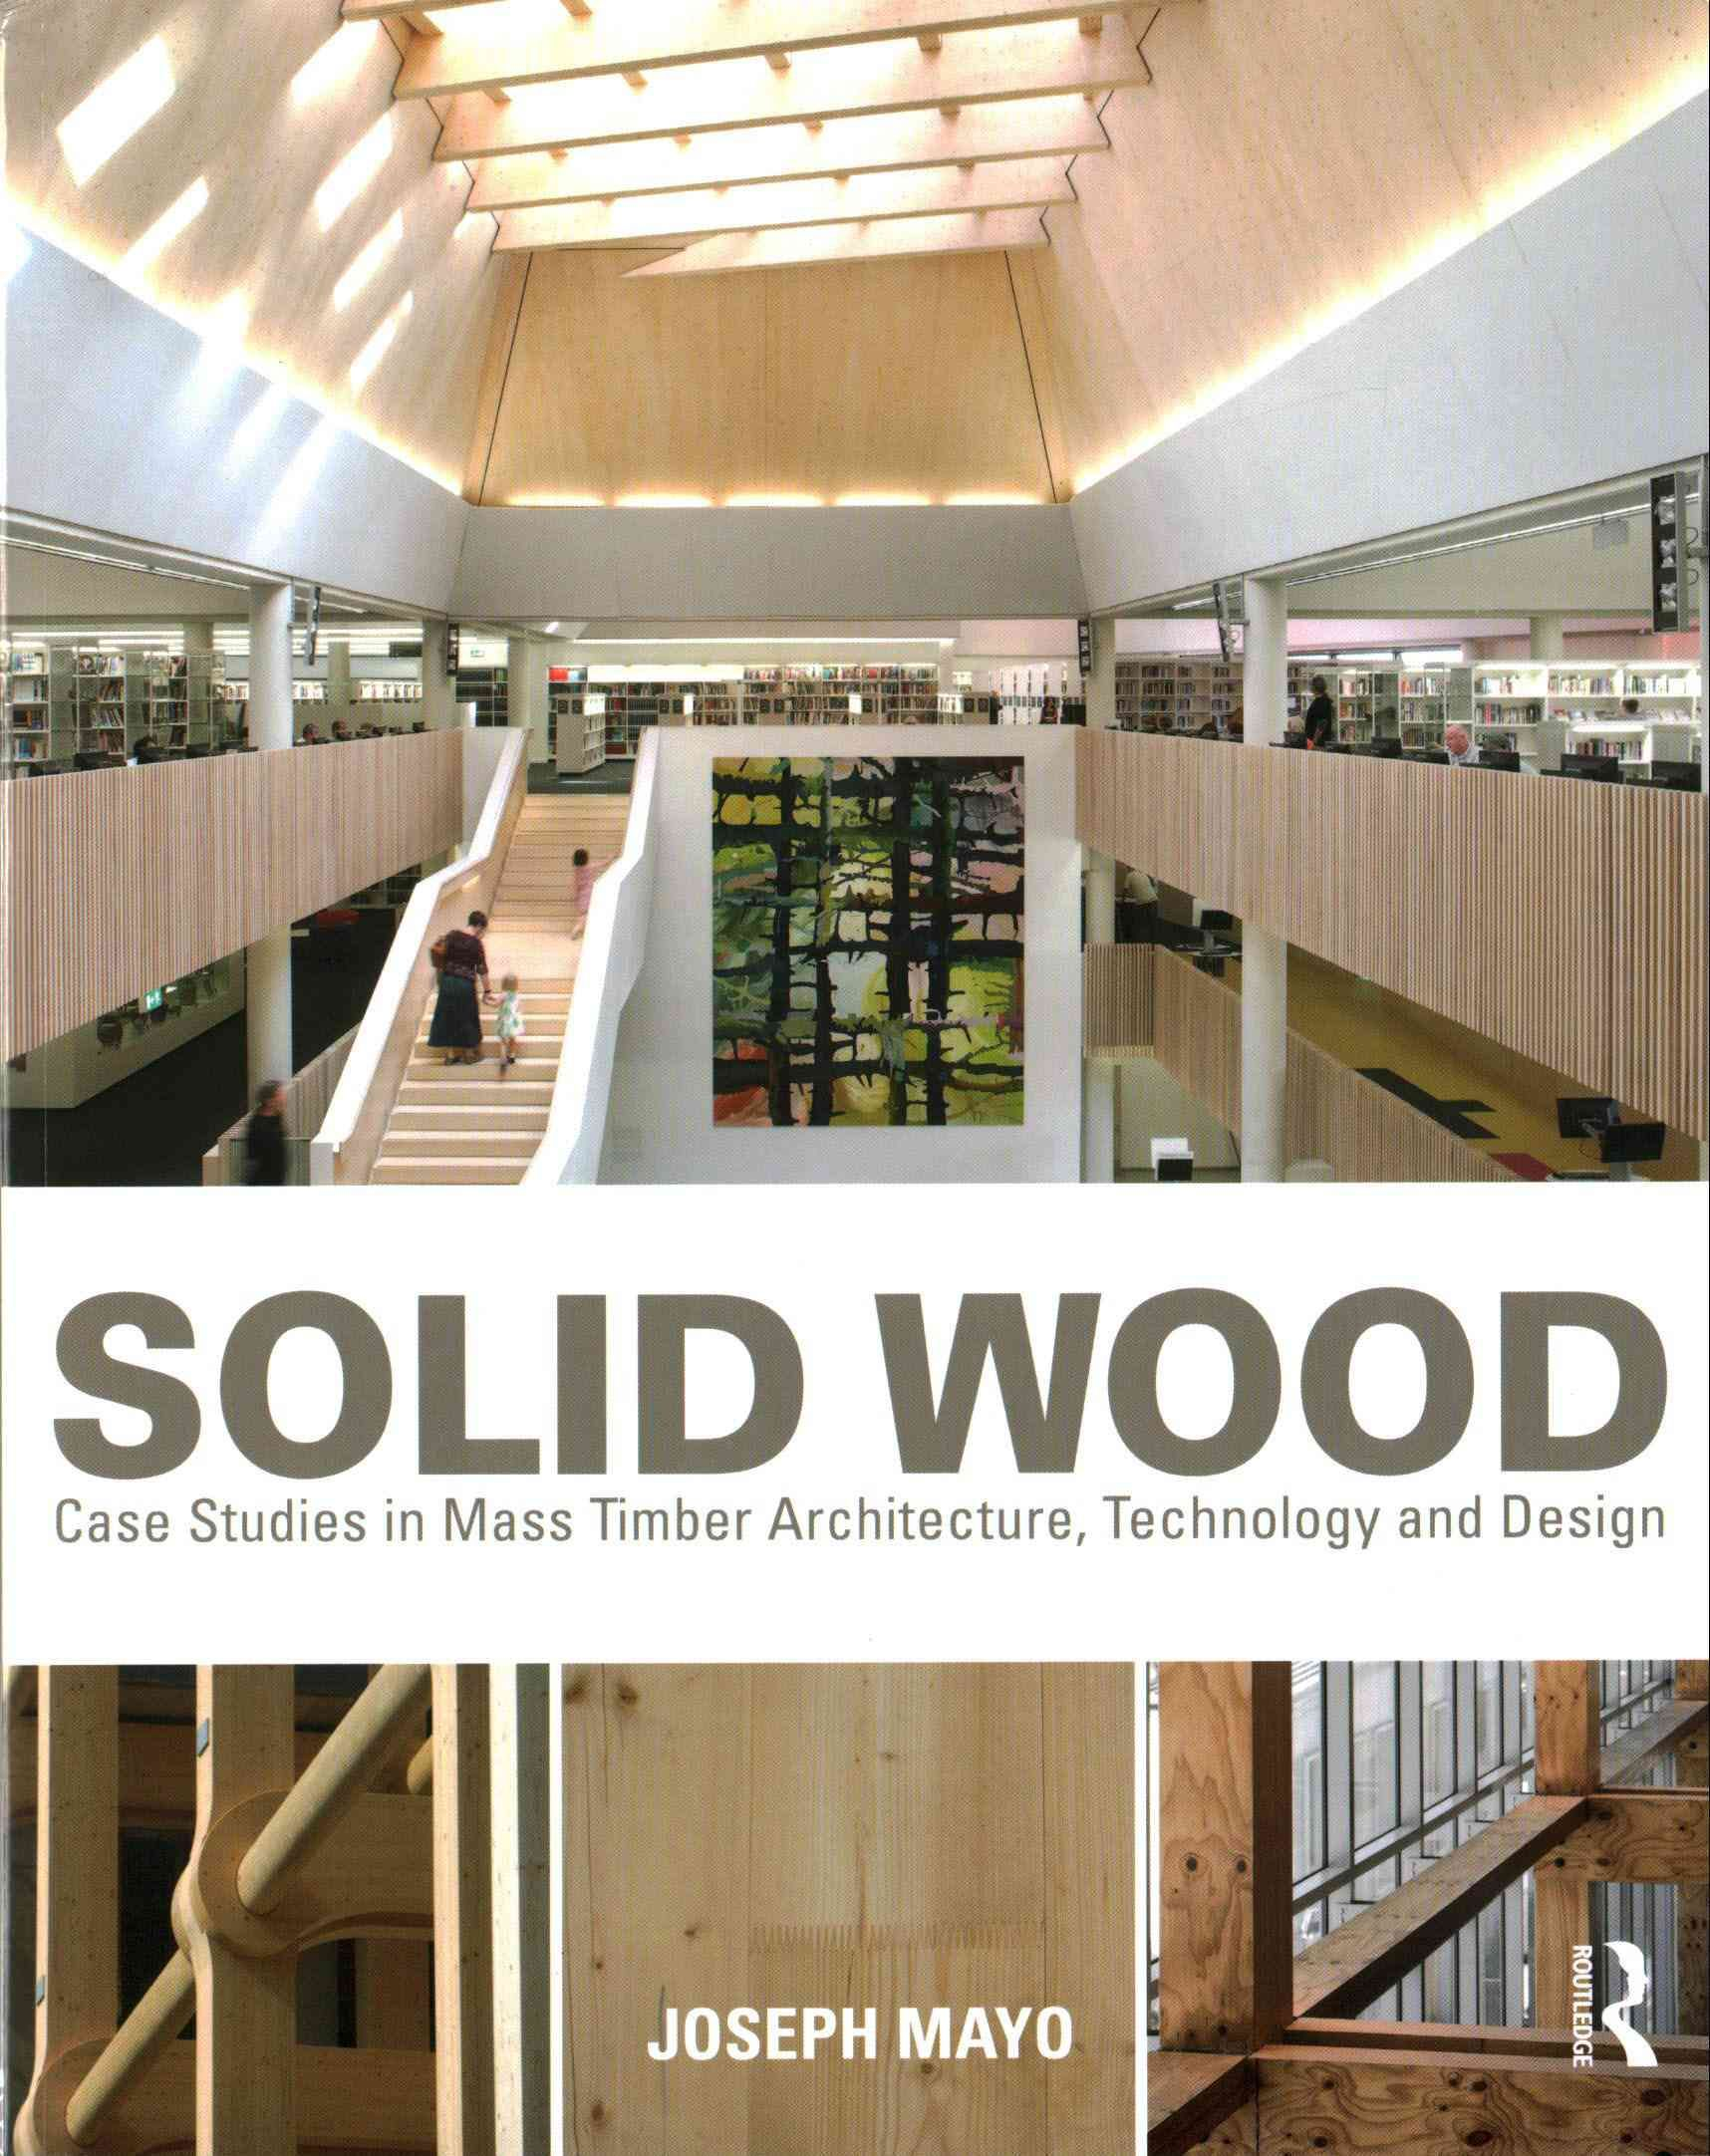 Over the past 10-15 years a renaissance in wood architecture has occurred with the development of new wood building systems and design strategies, elevating wood from a predominantly single-family res